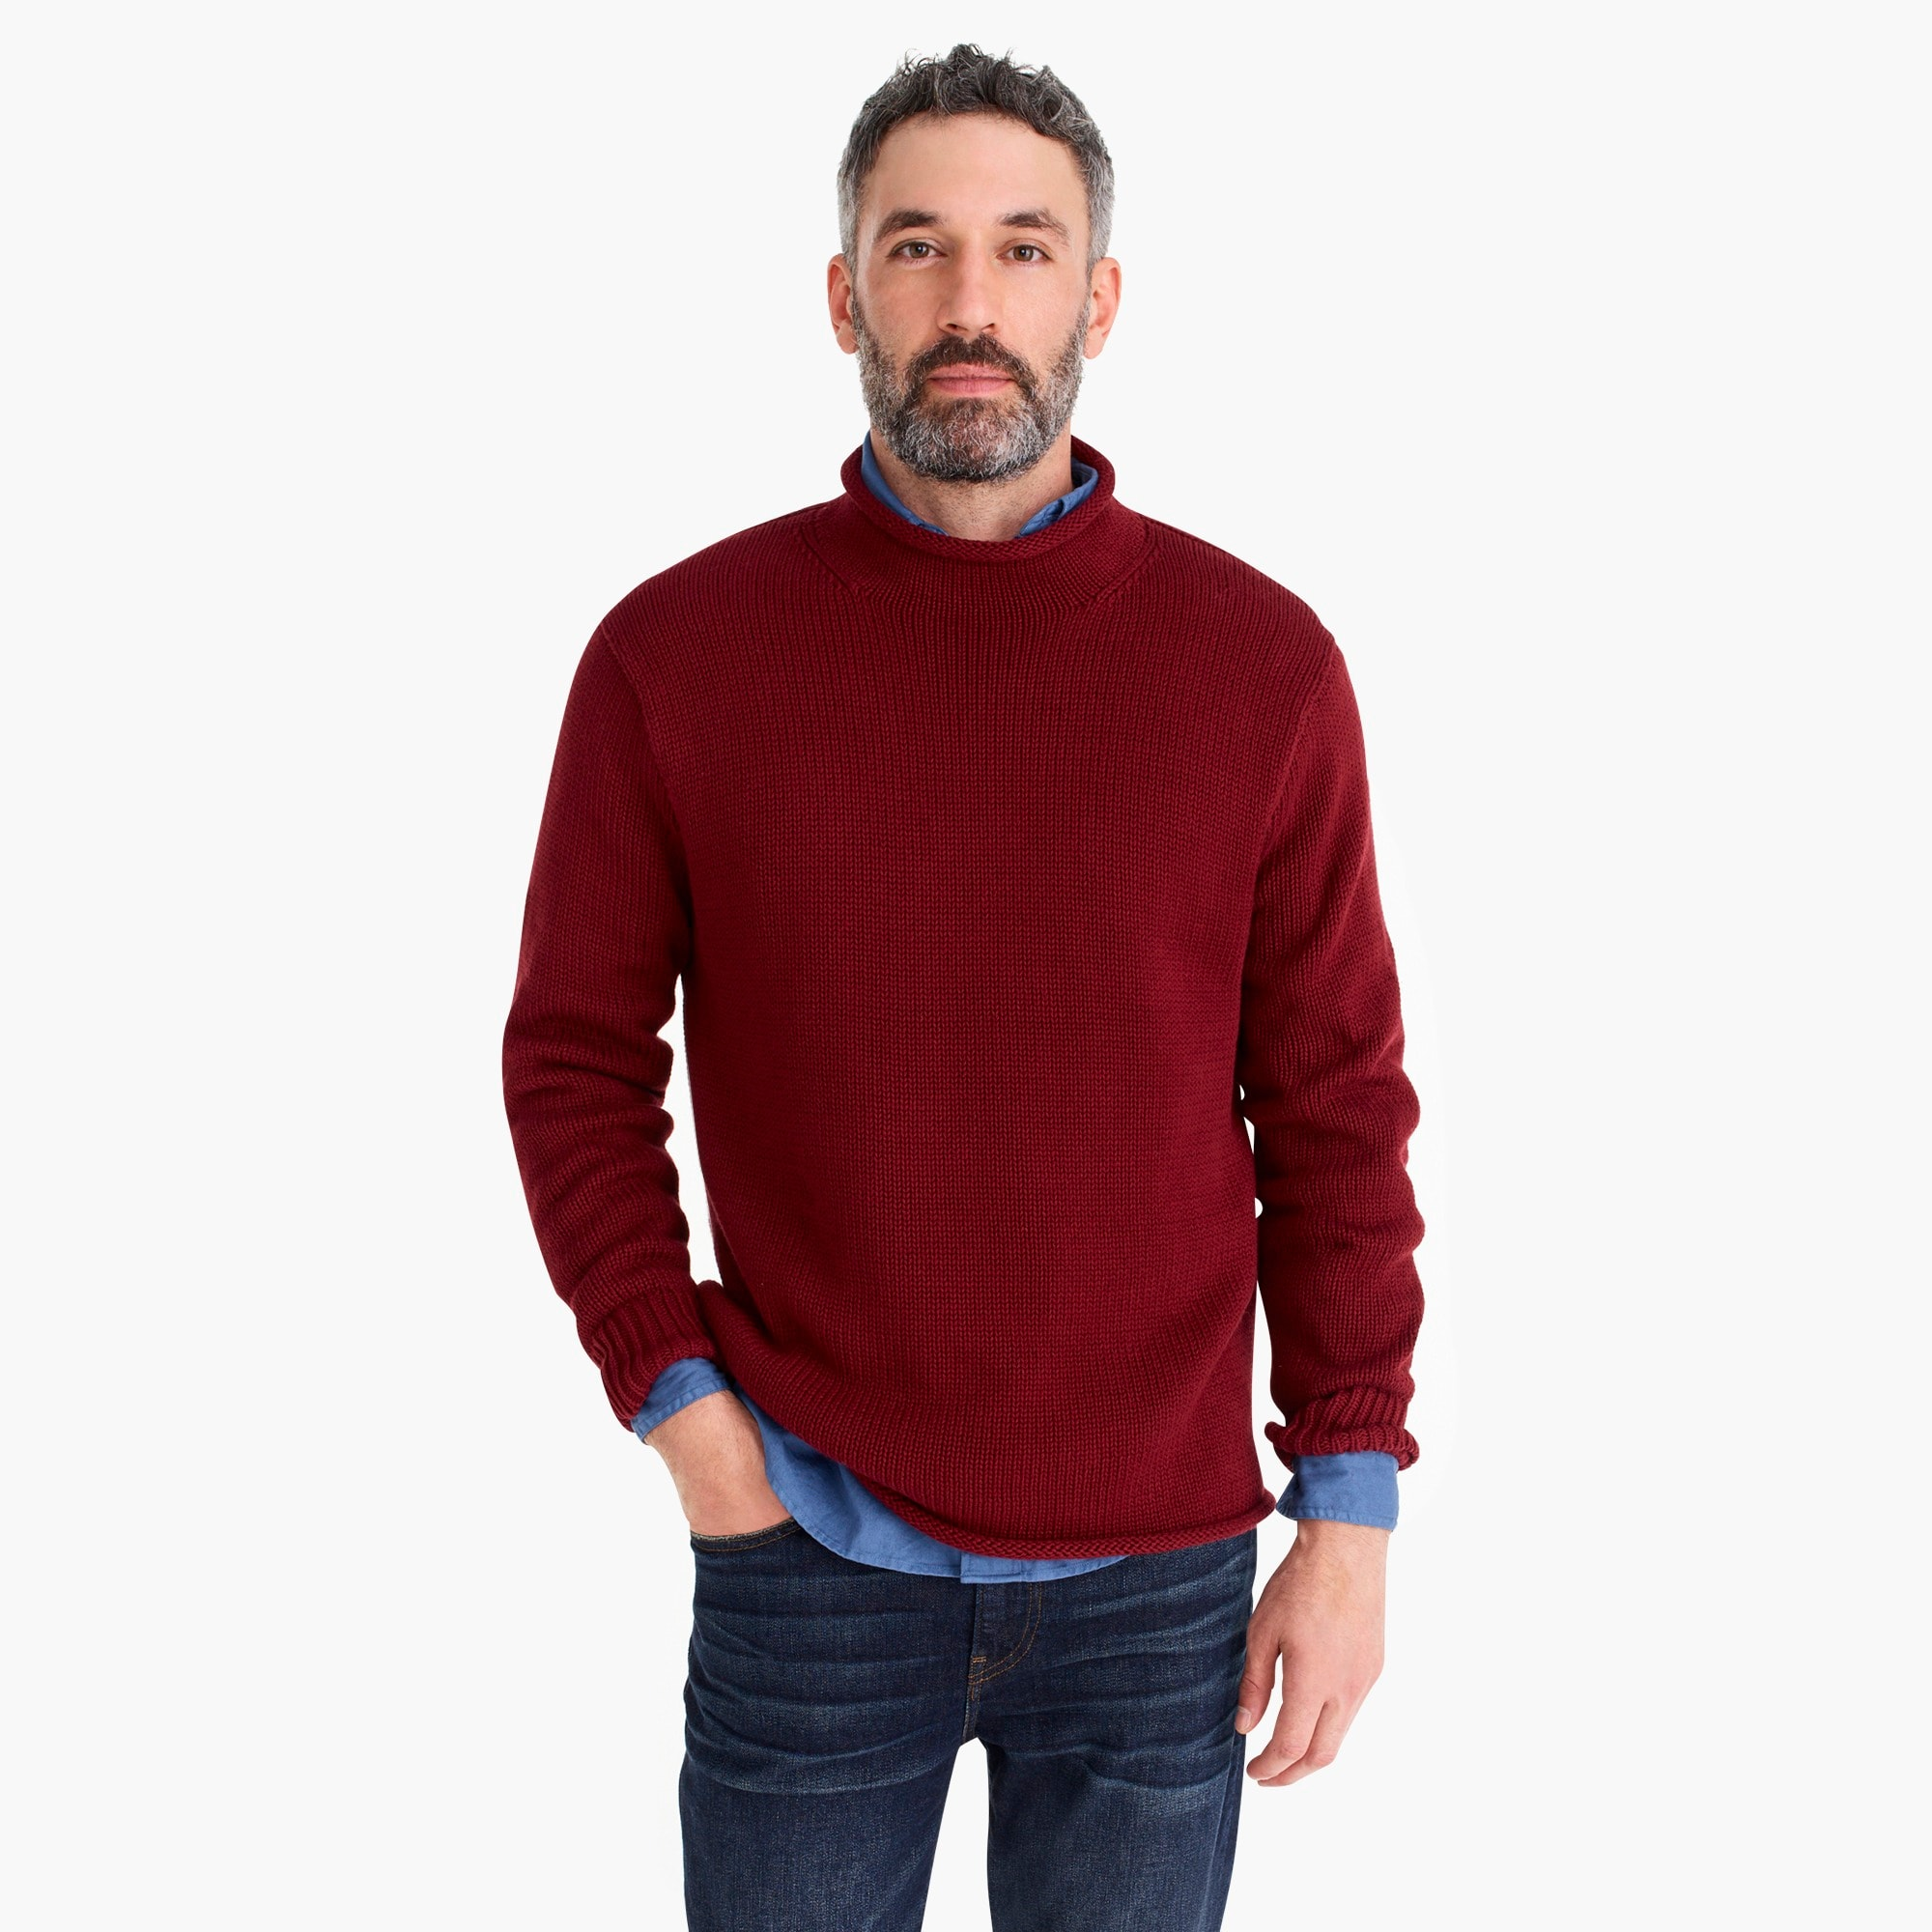 Unisex 1988 cotton rollneck™ sweater